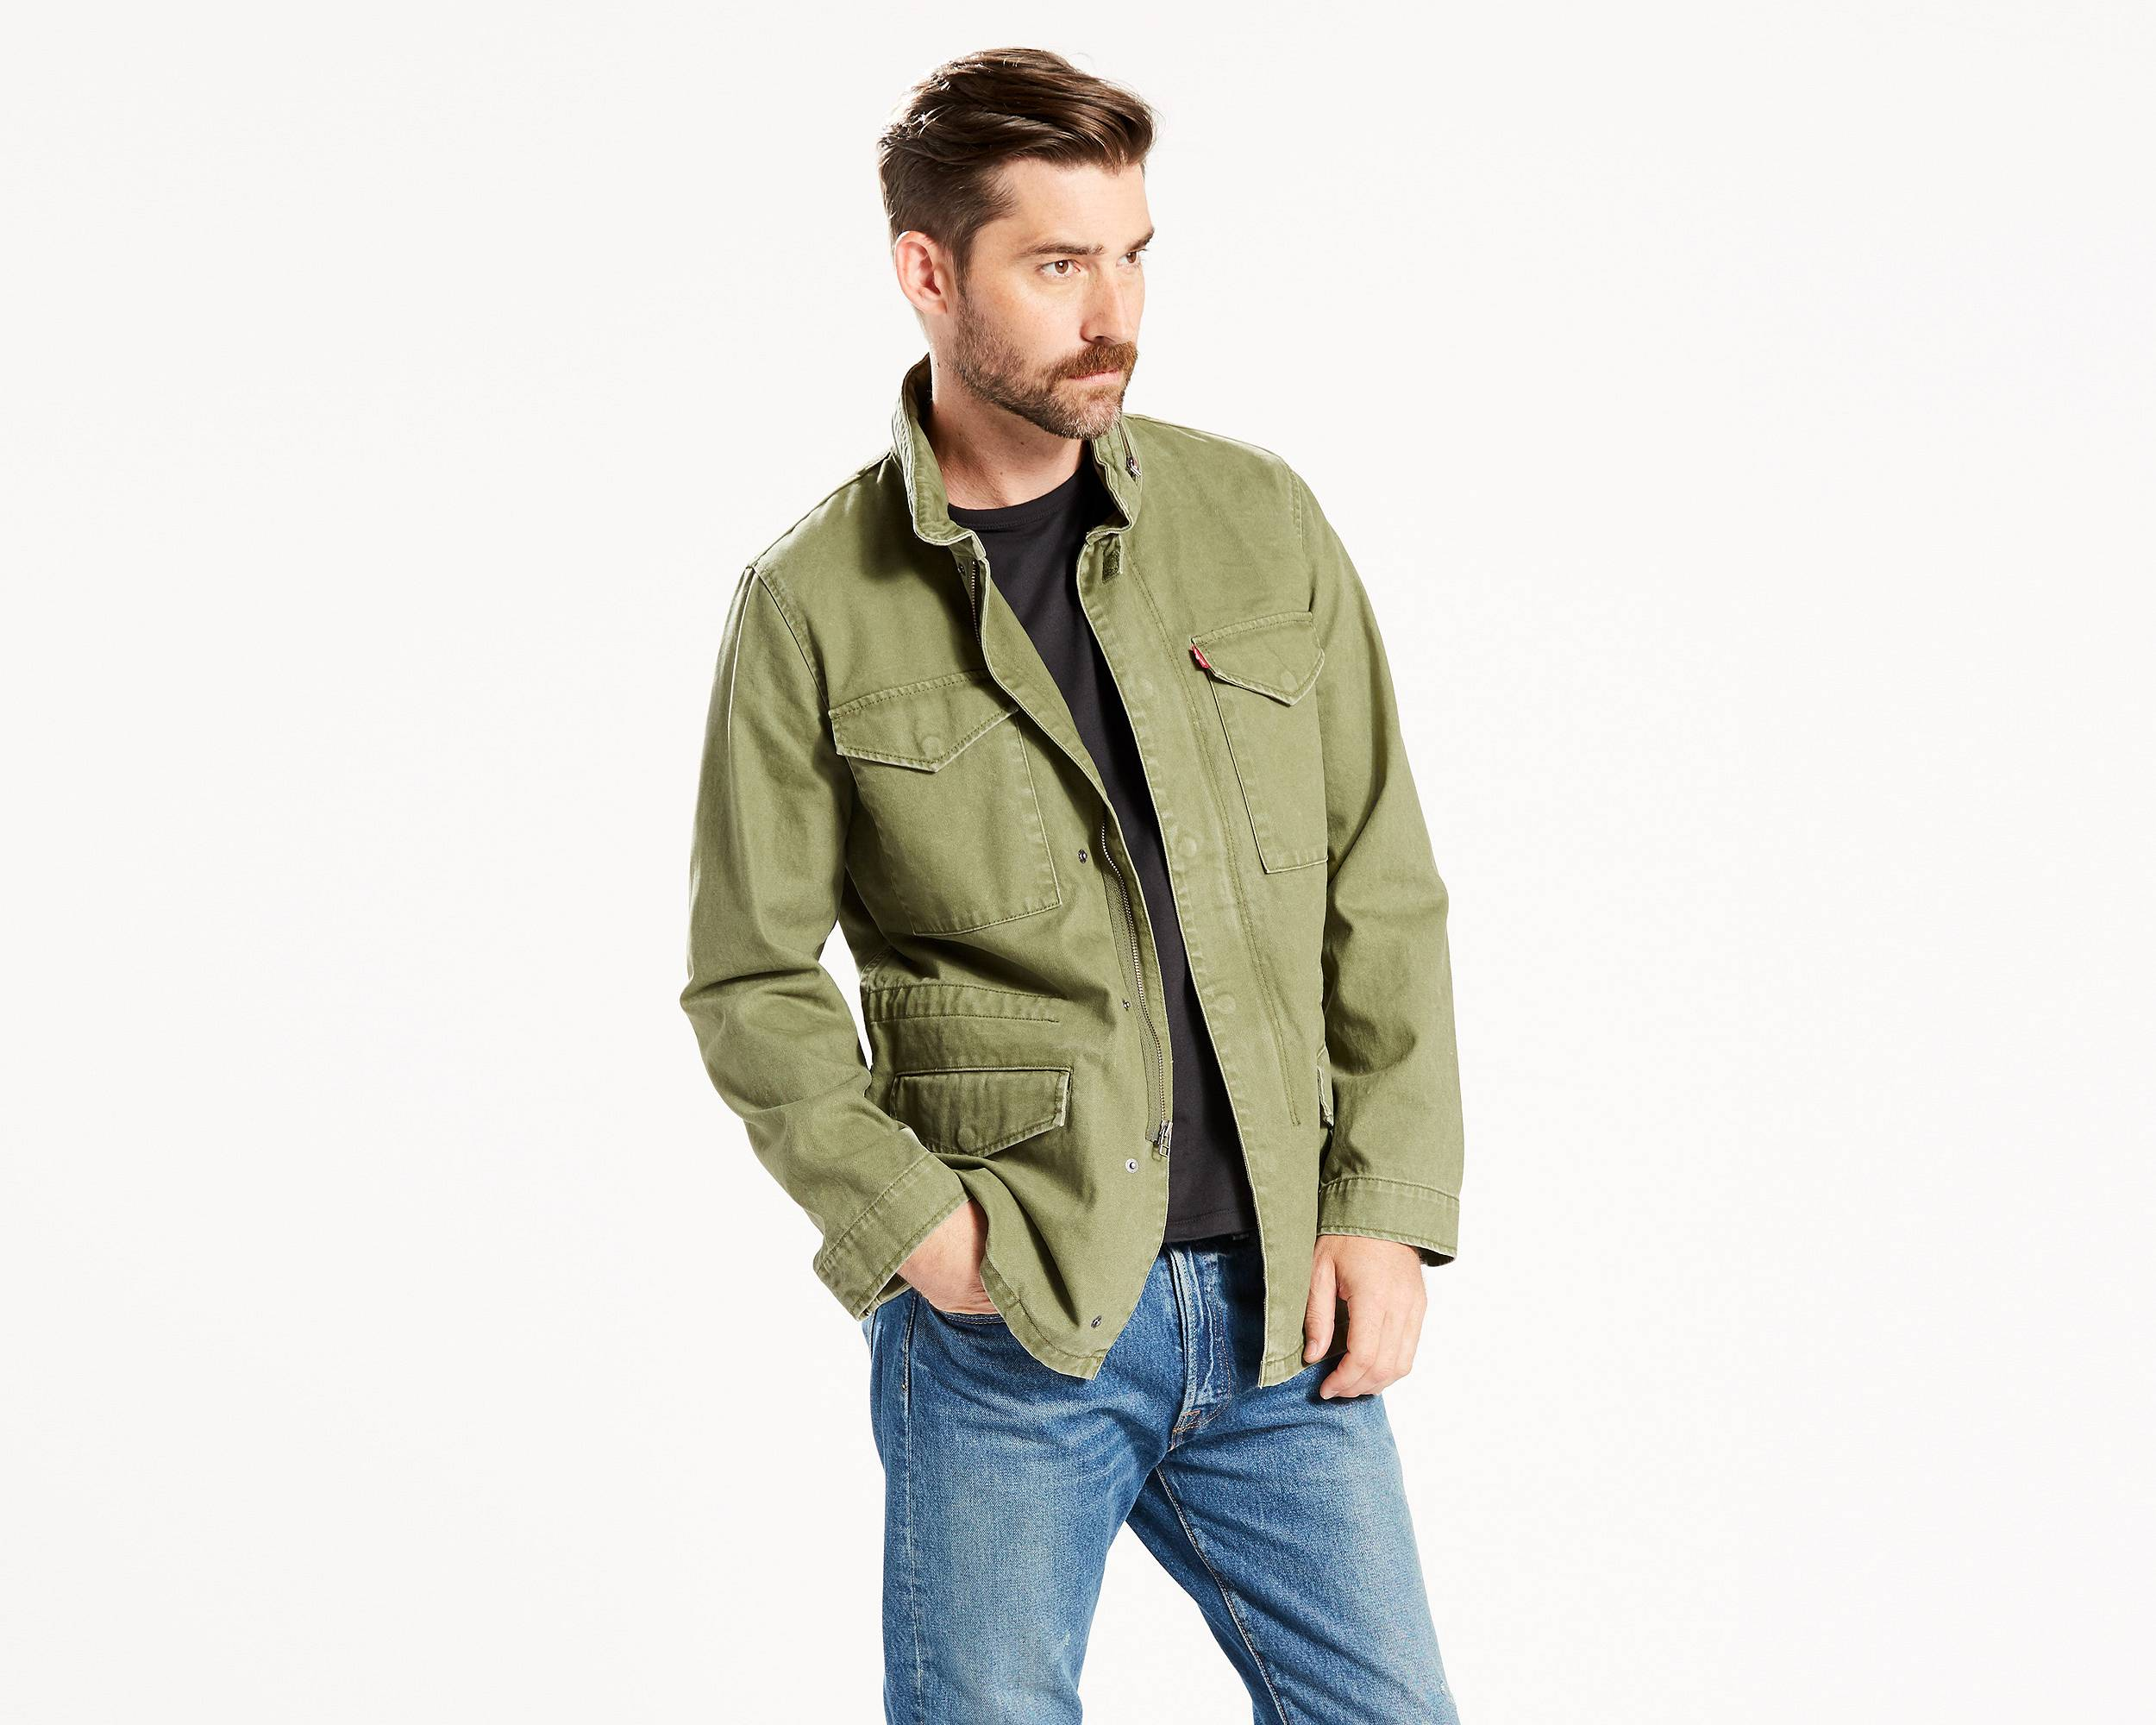 Men&39s Jackets - Shop Denim Jackets for Men | Levi&39s®